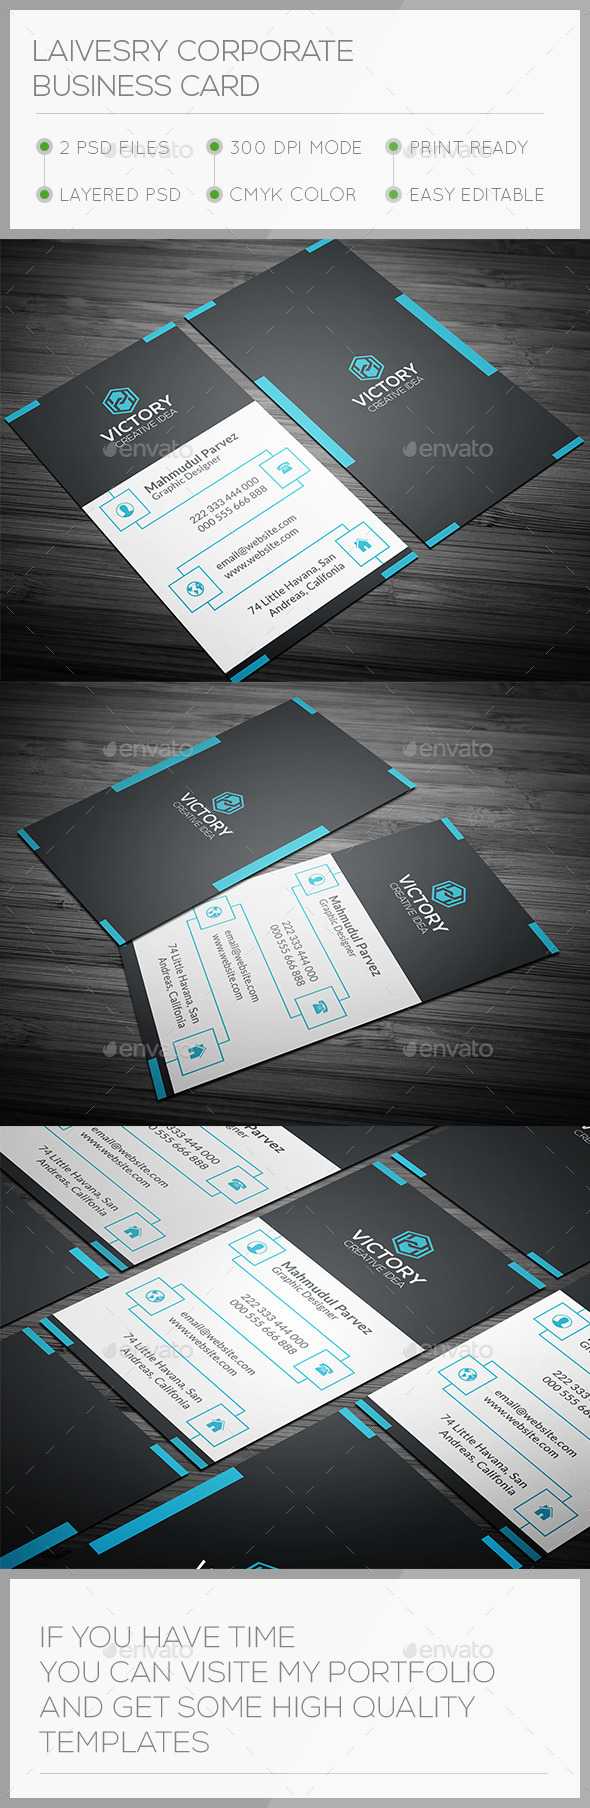 Laivesry Corporate Business Card - Corporate Business Cards